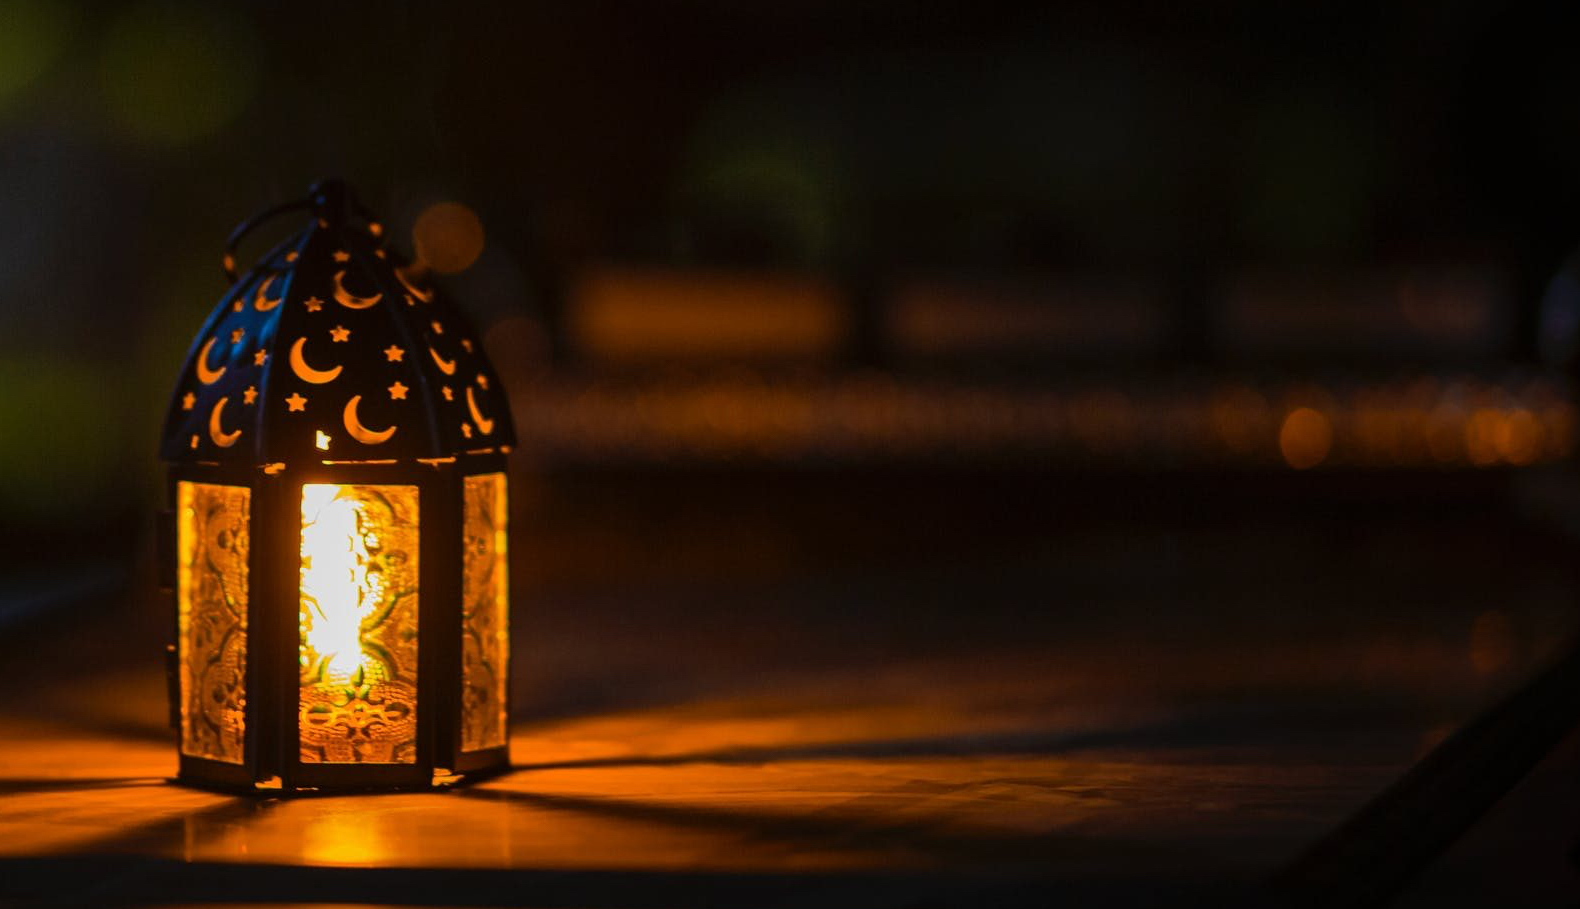 photo of ramadan light on top of table